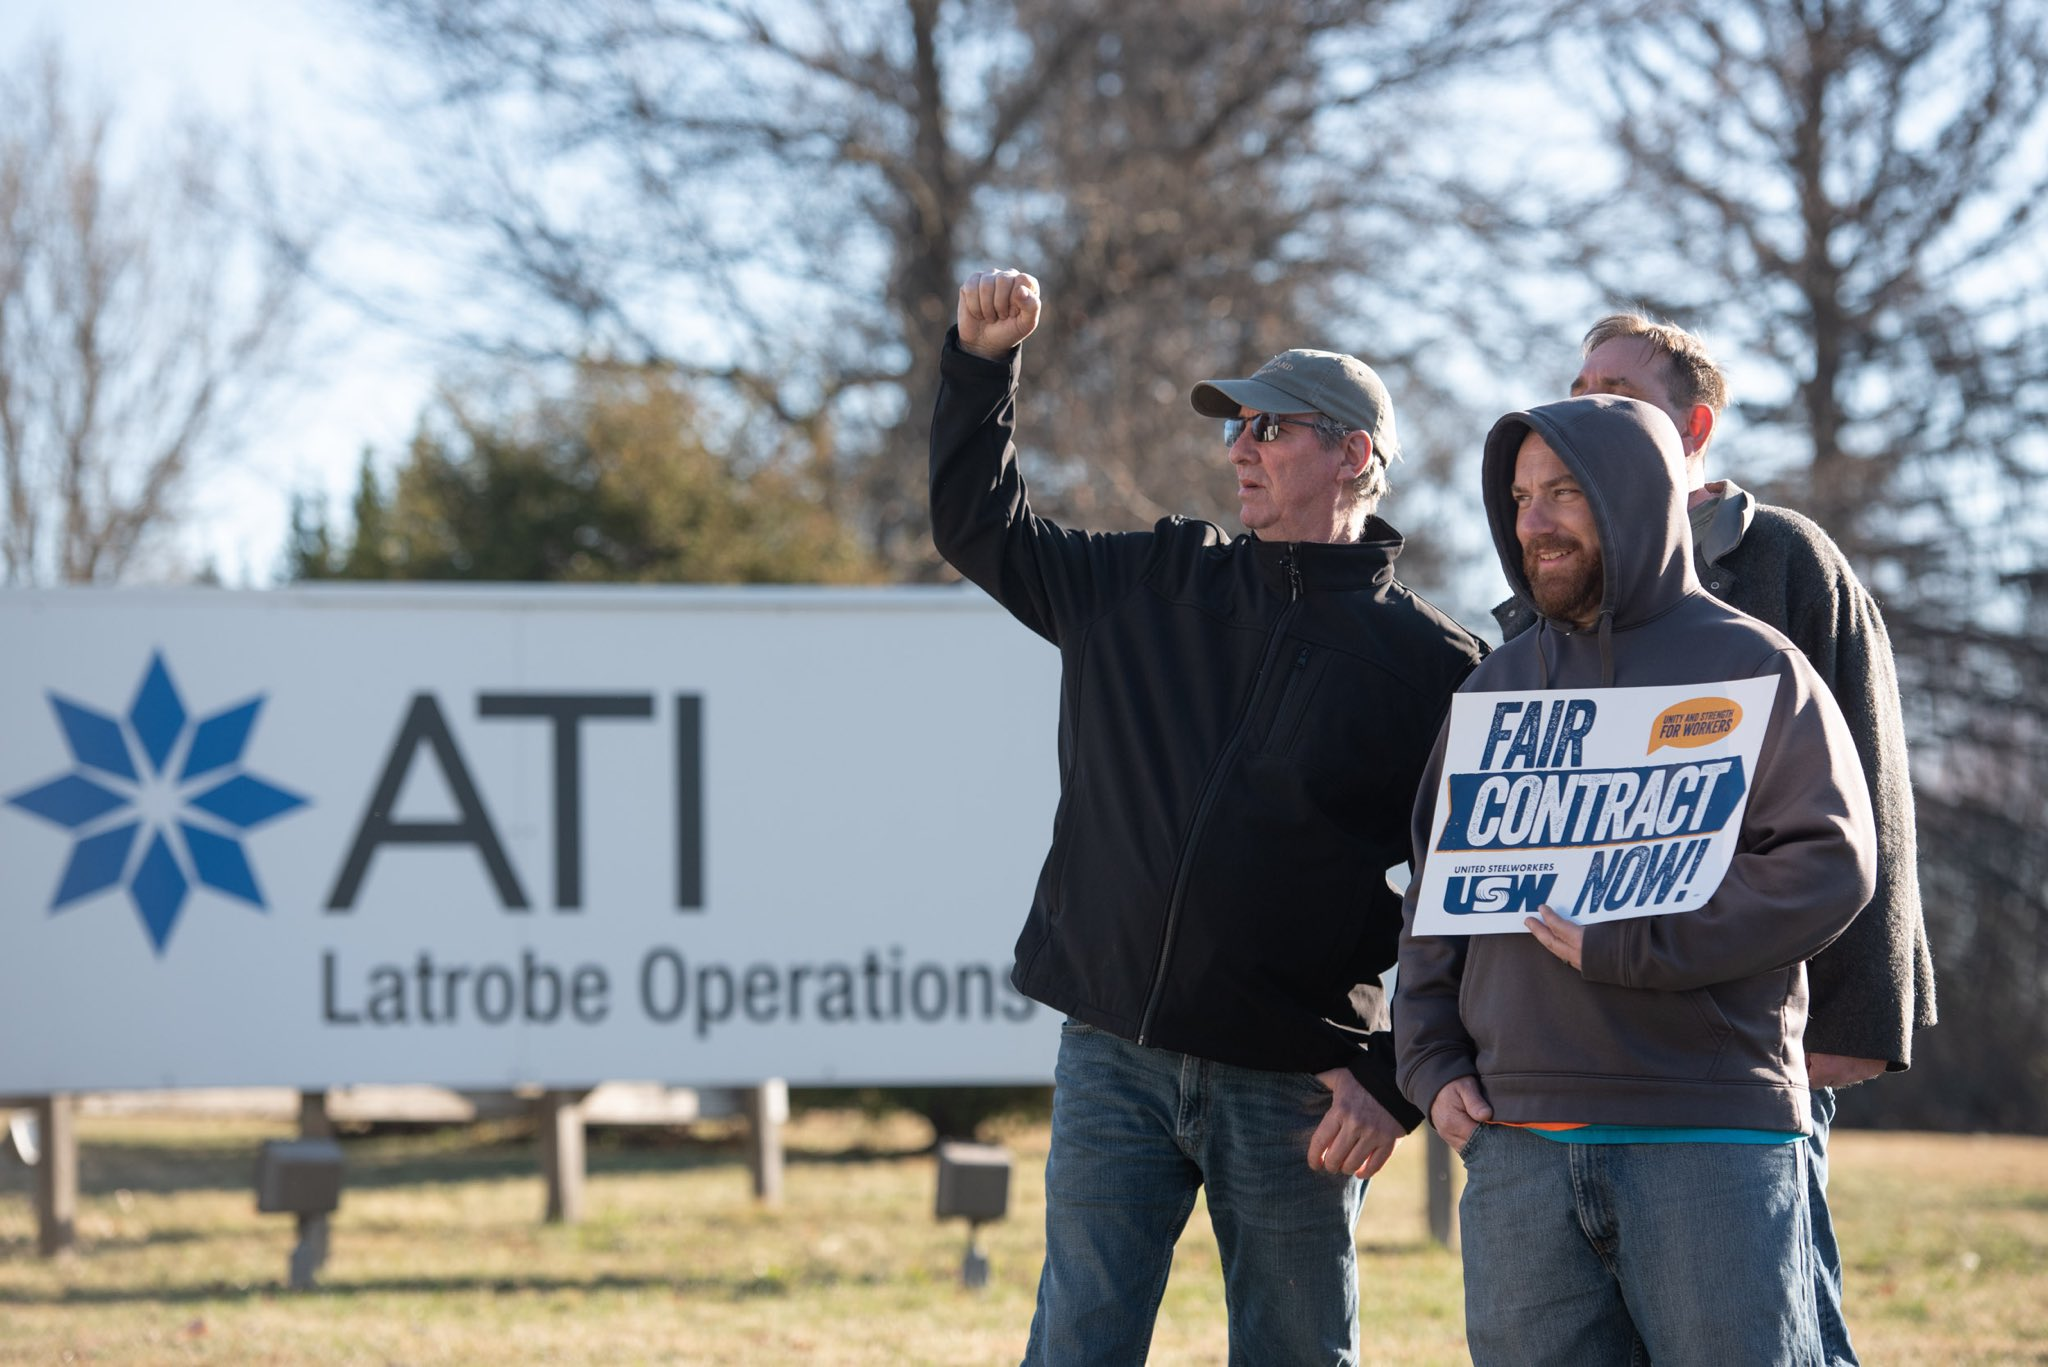 """Two steel workers on strike stand with their fists in the air and a sign that says """"Fair Contract Now,"""" the background is a sign for ATI."""